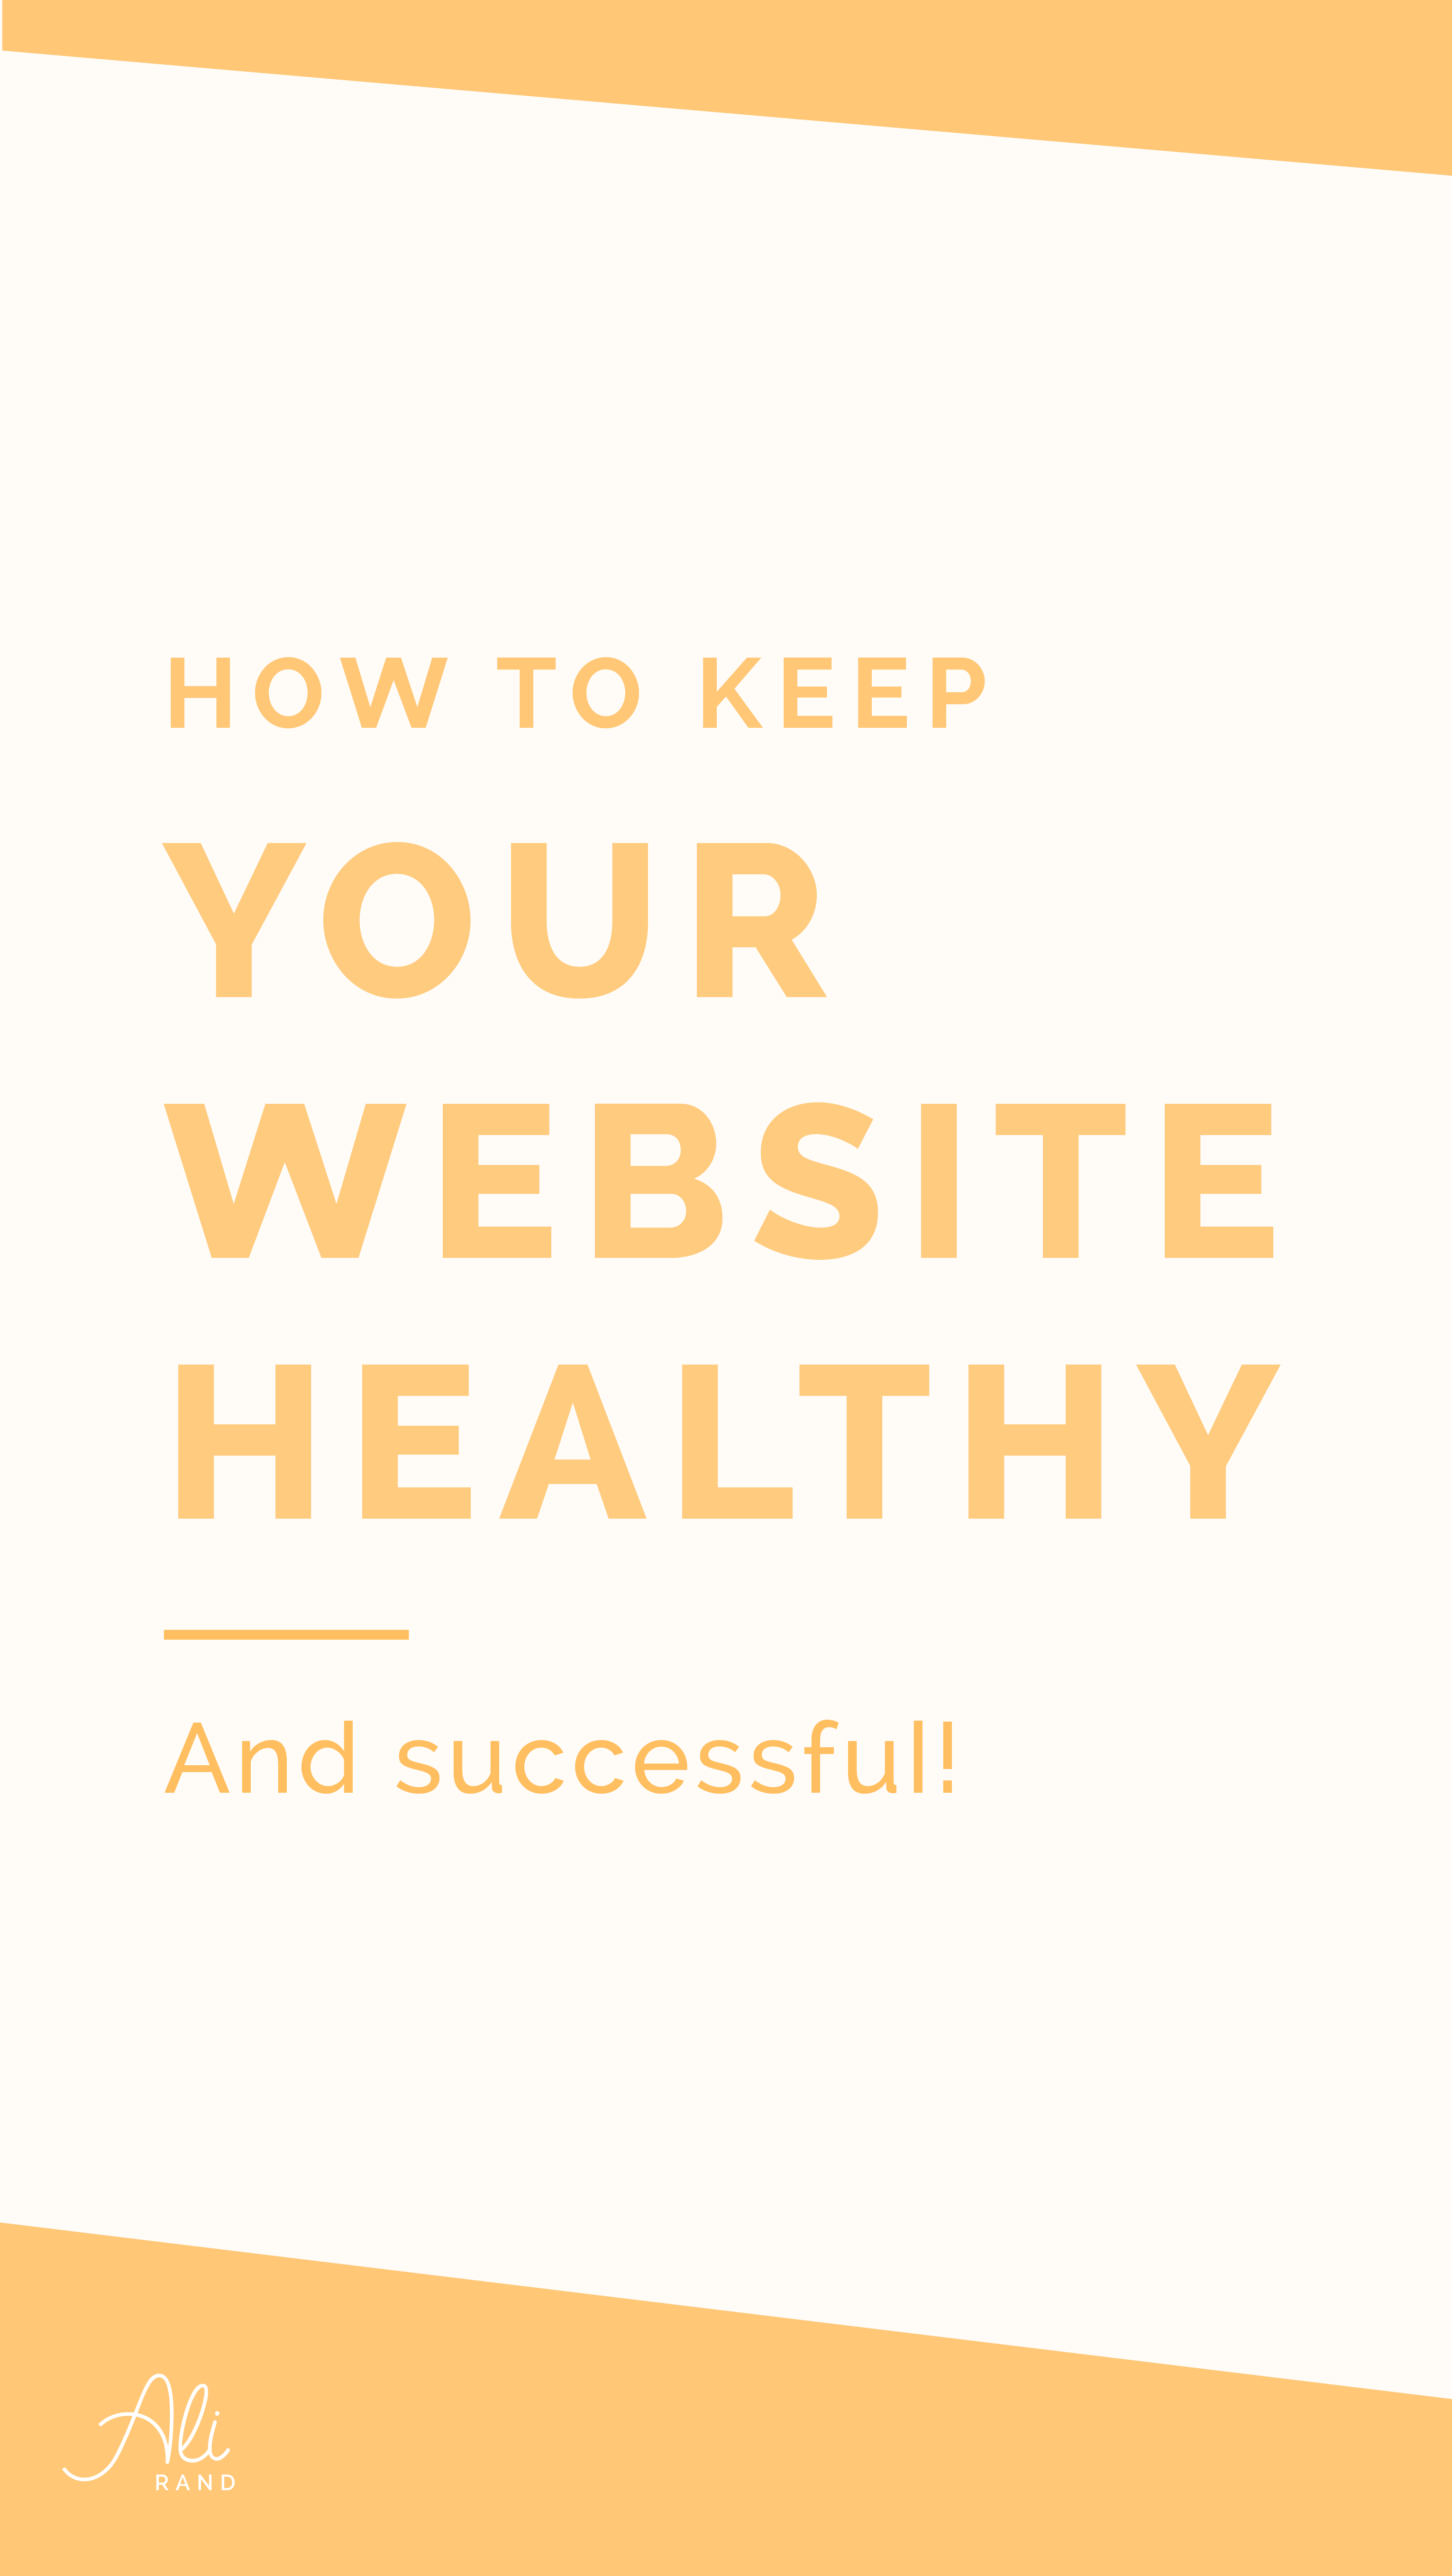 How To Keep Your Website Healthy And Successful